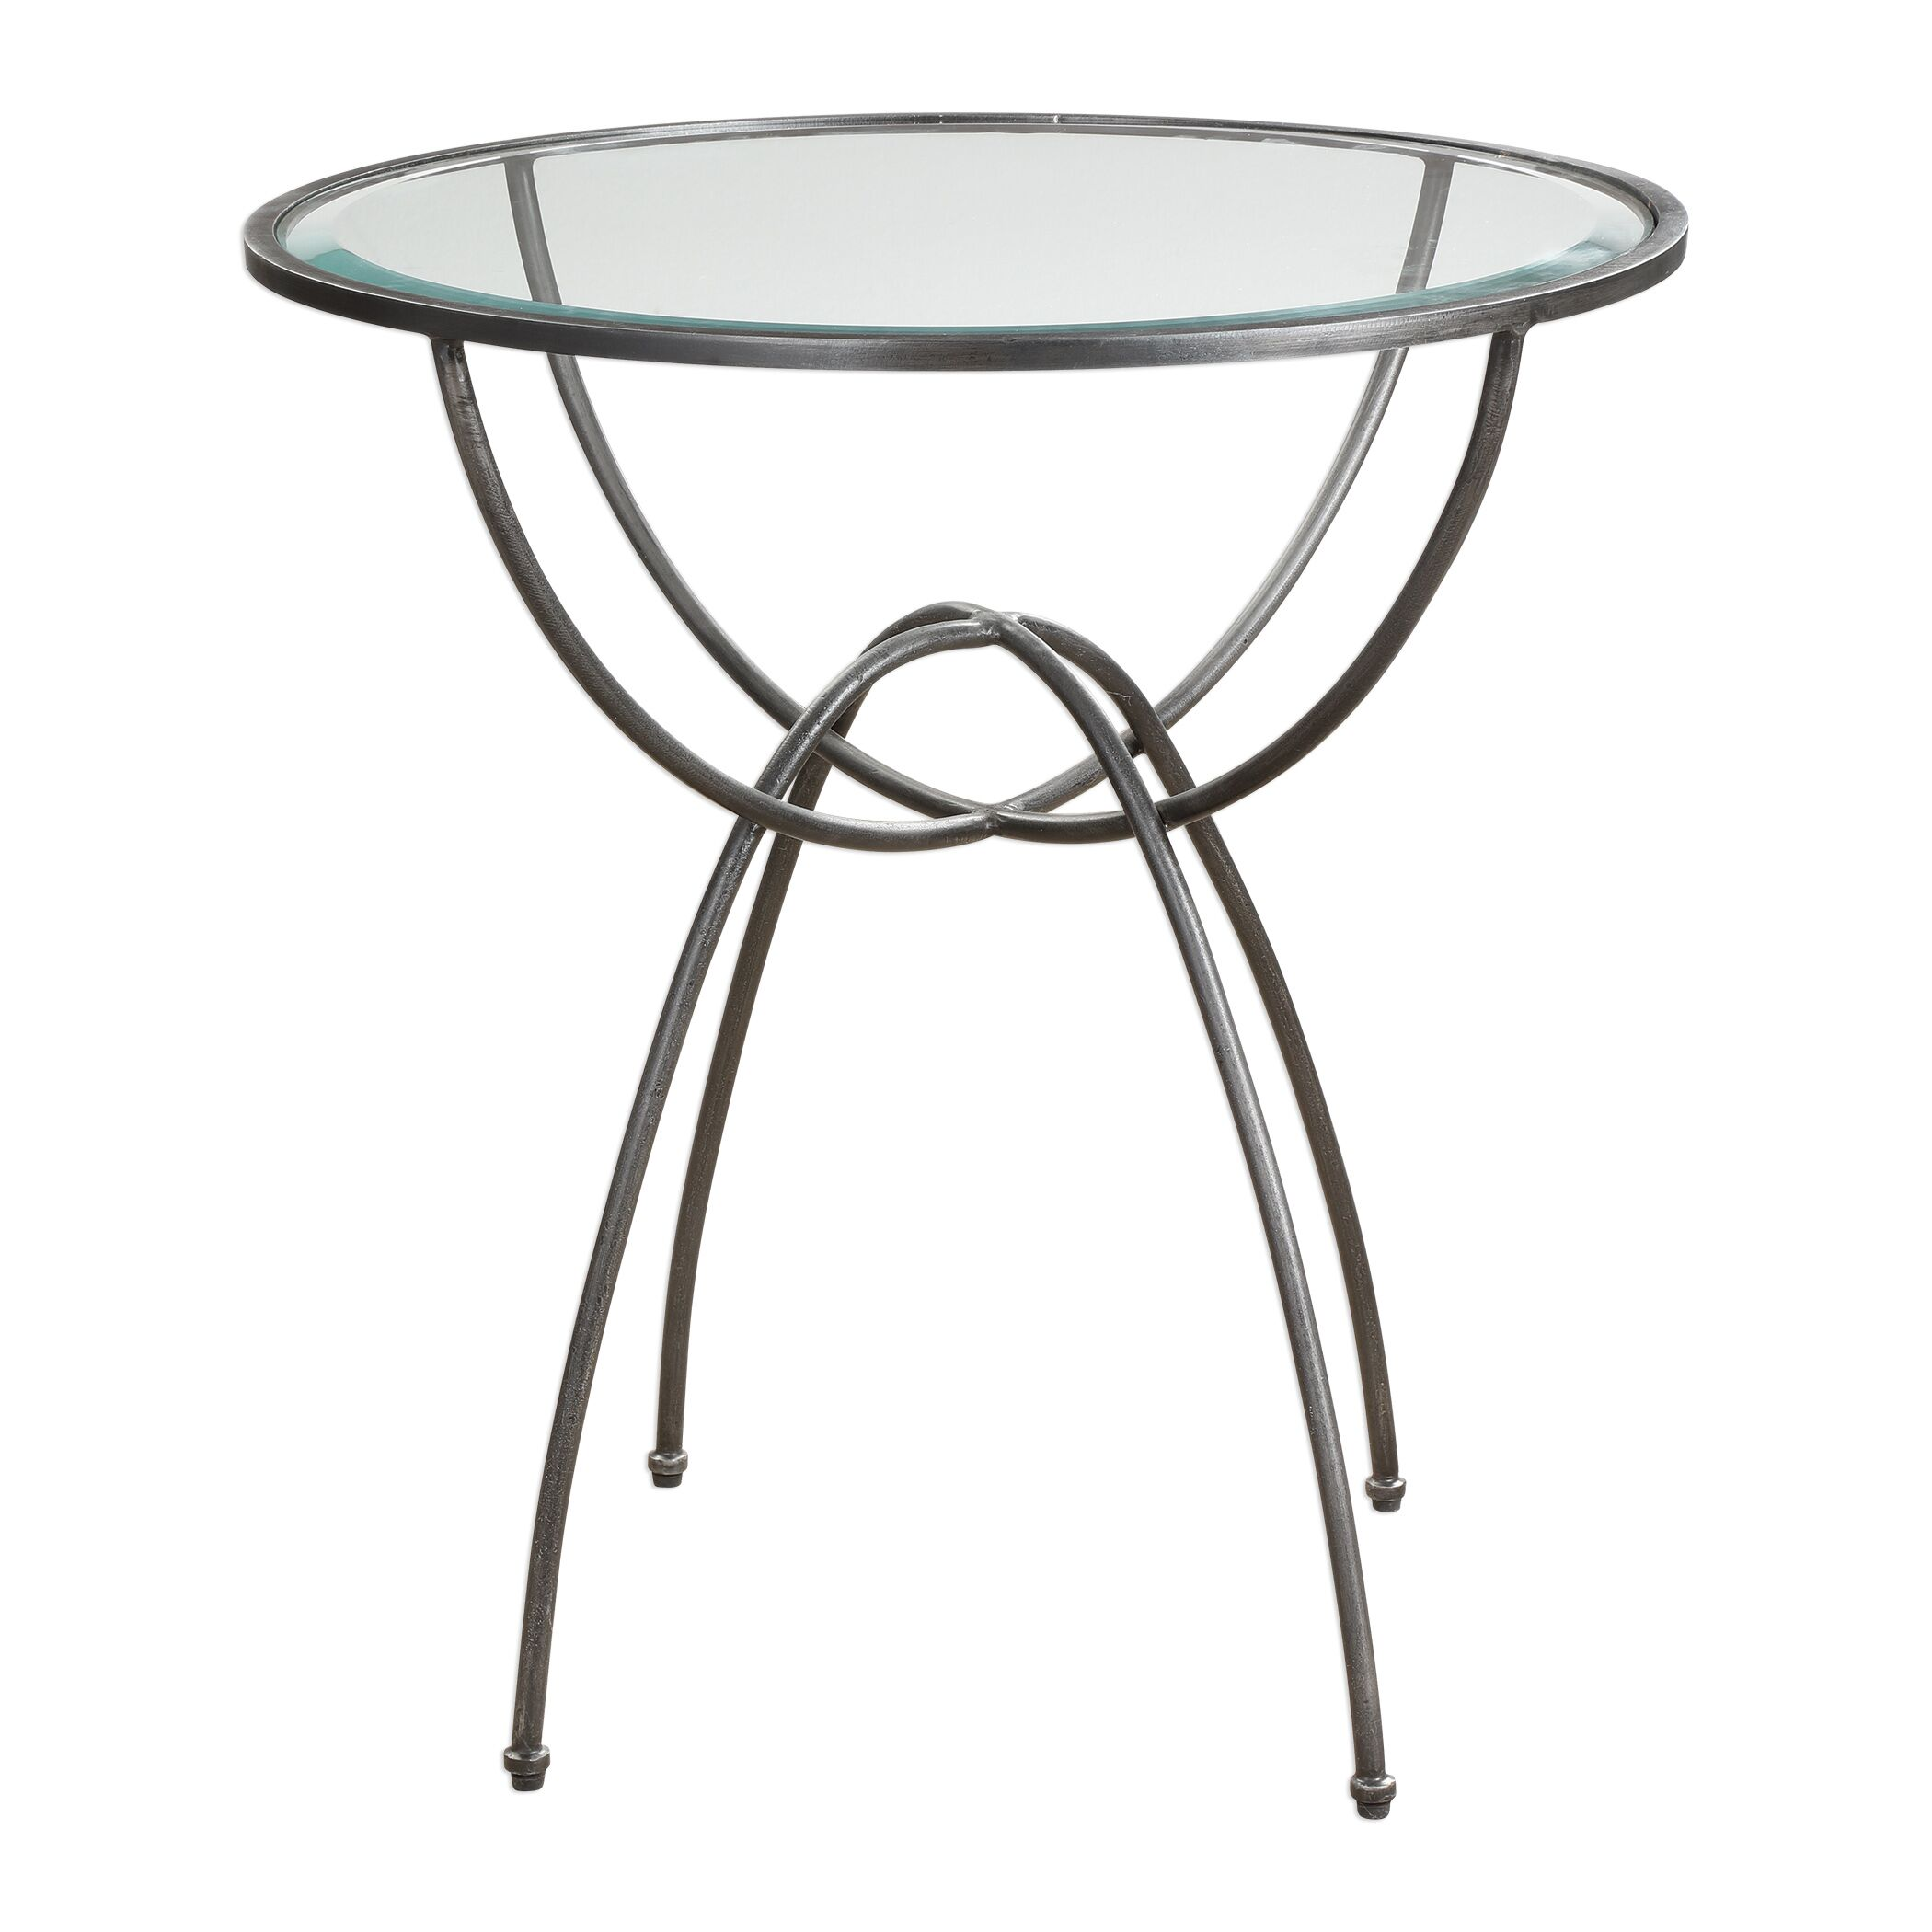 Mirabella Aged Steel Lamp End Table